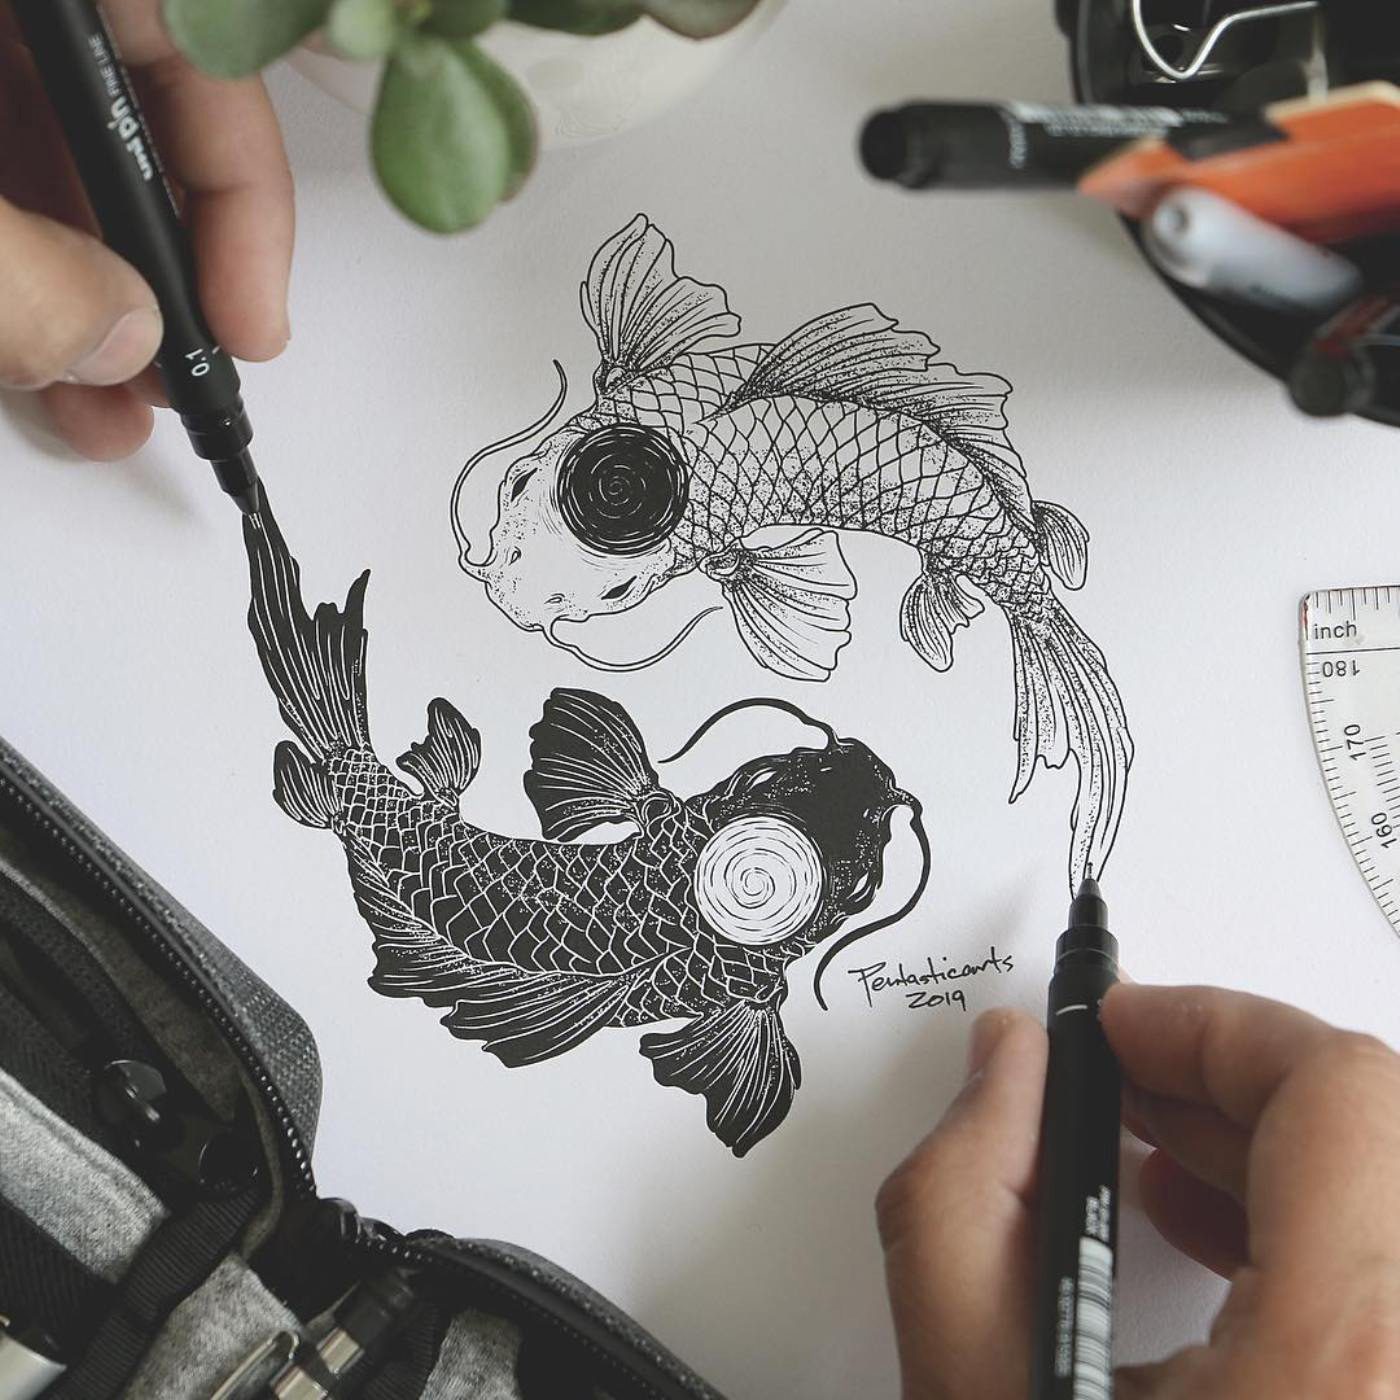 Pencil Sketch Of Two Fish